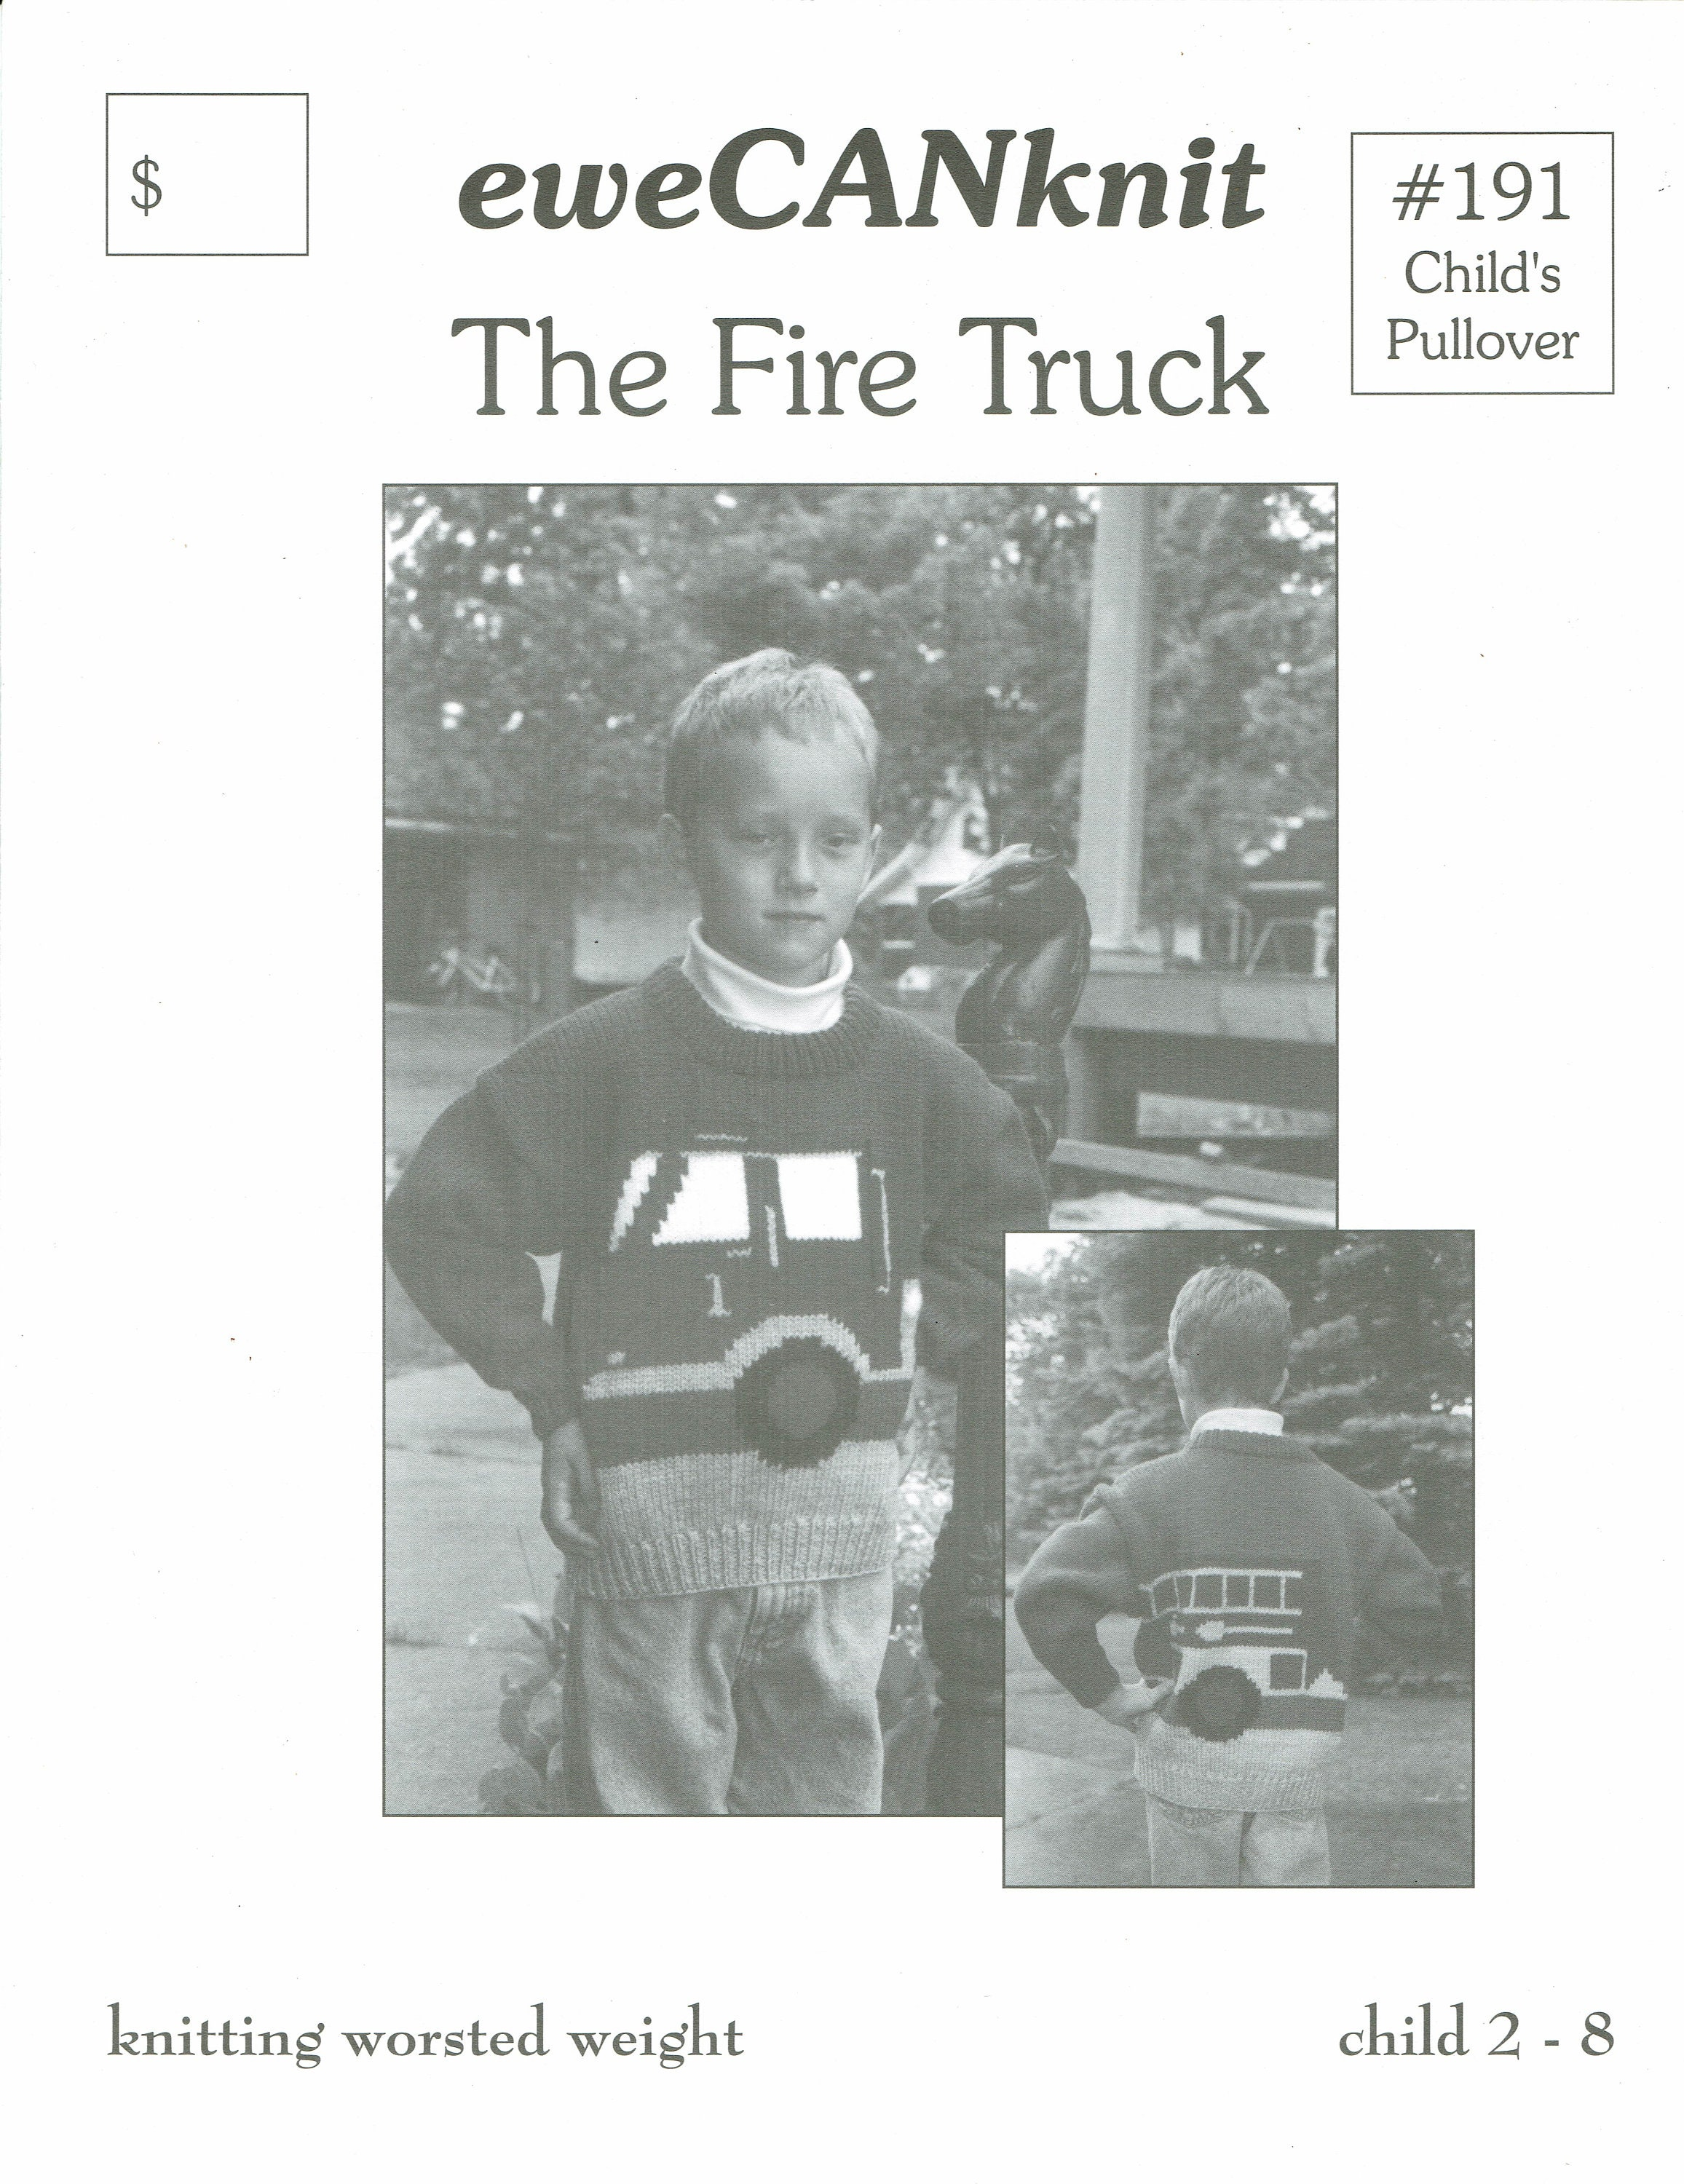 The Fire Truck child's knitting pattern from eweCanknit uses